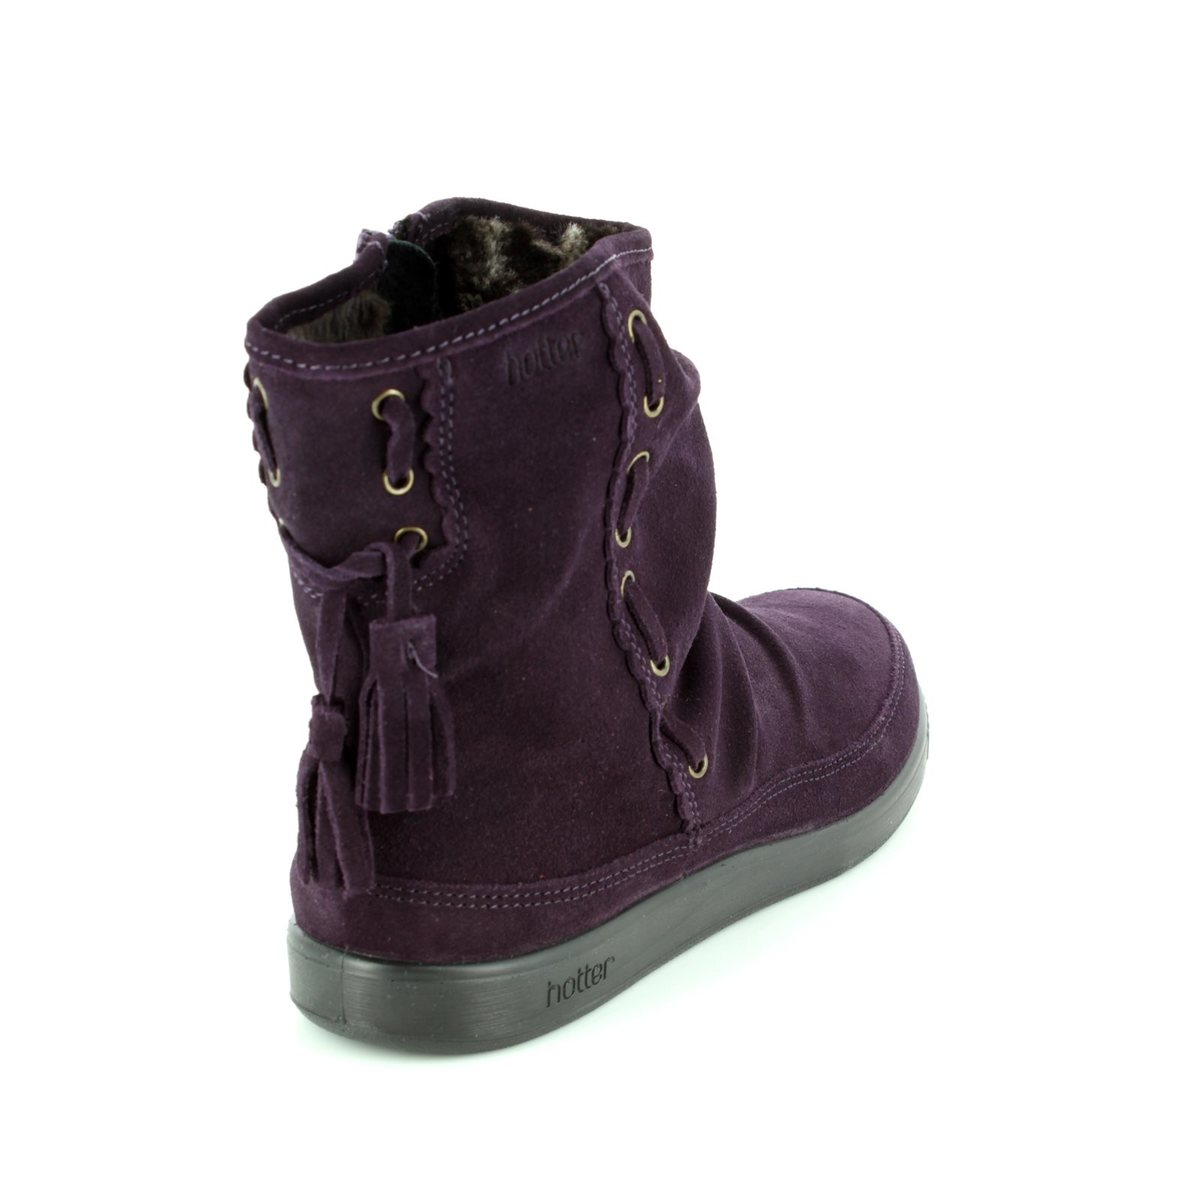 6fa1dacae Hotter Ankle Boots - Purple suede - 7204/90 PIXIE